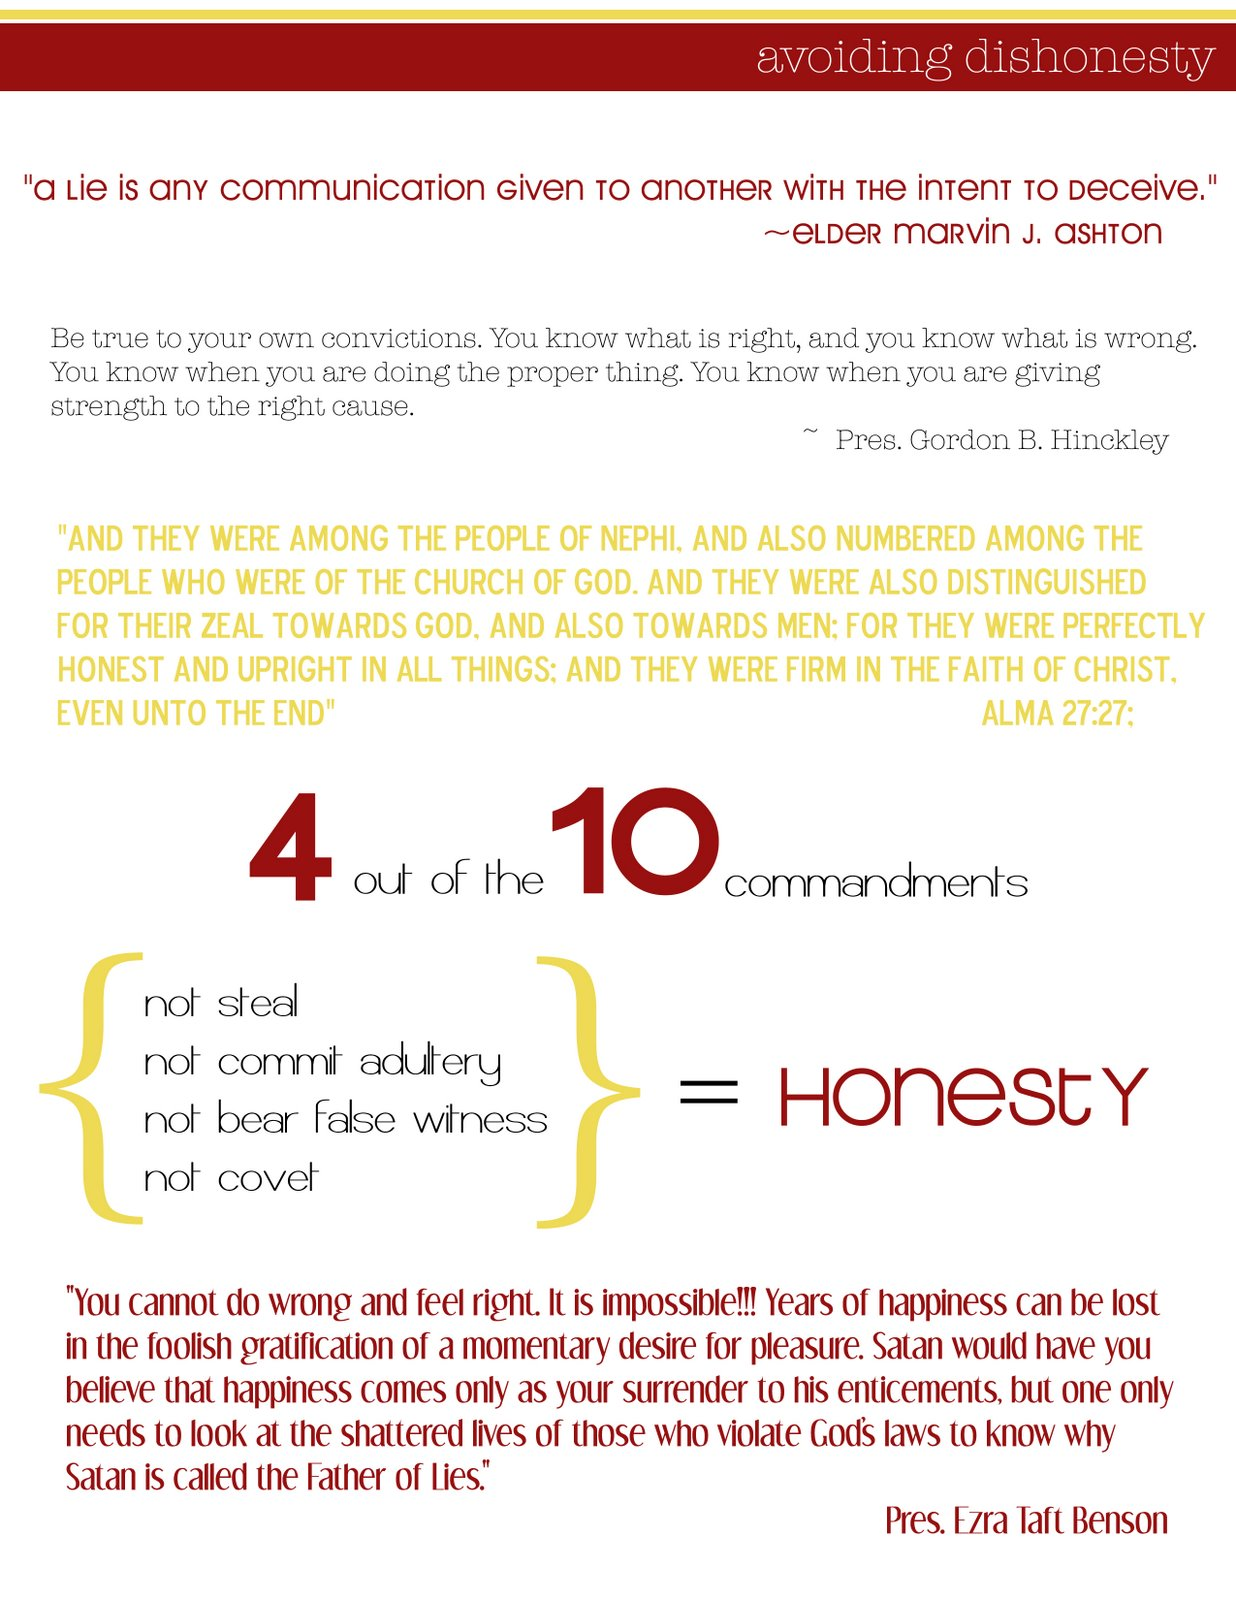 quote about dishonesty in a relationship